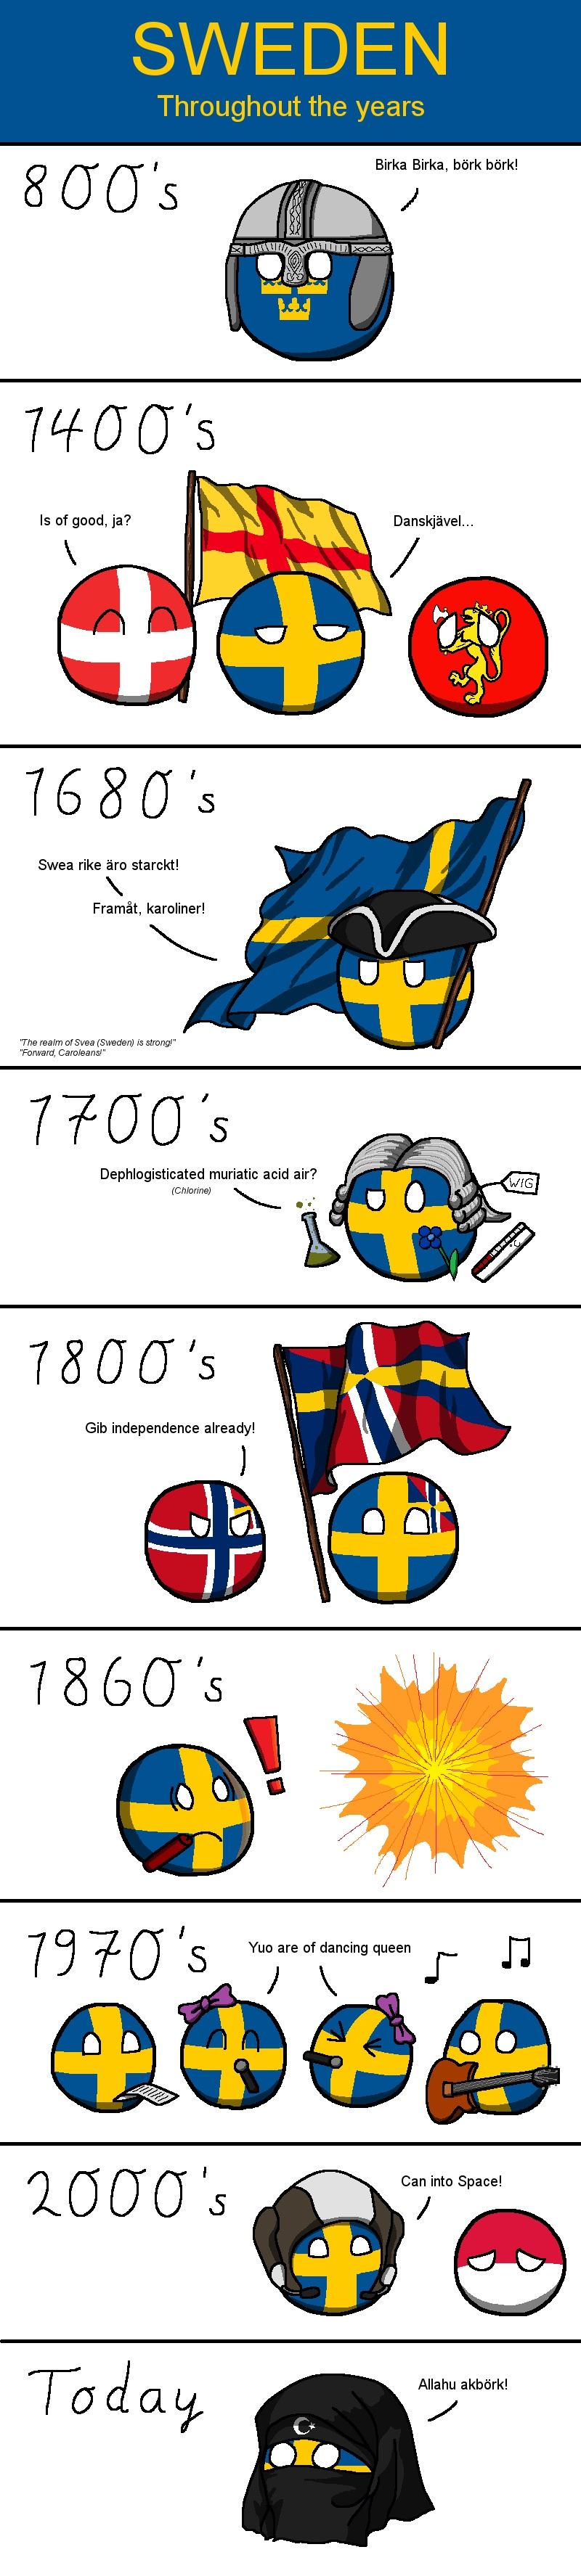 Brief summary of Sweden's history